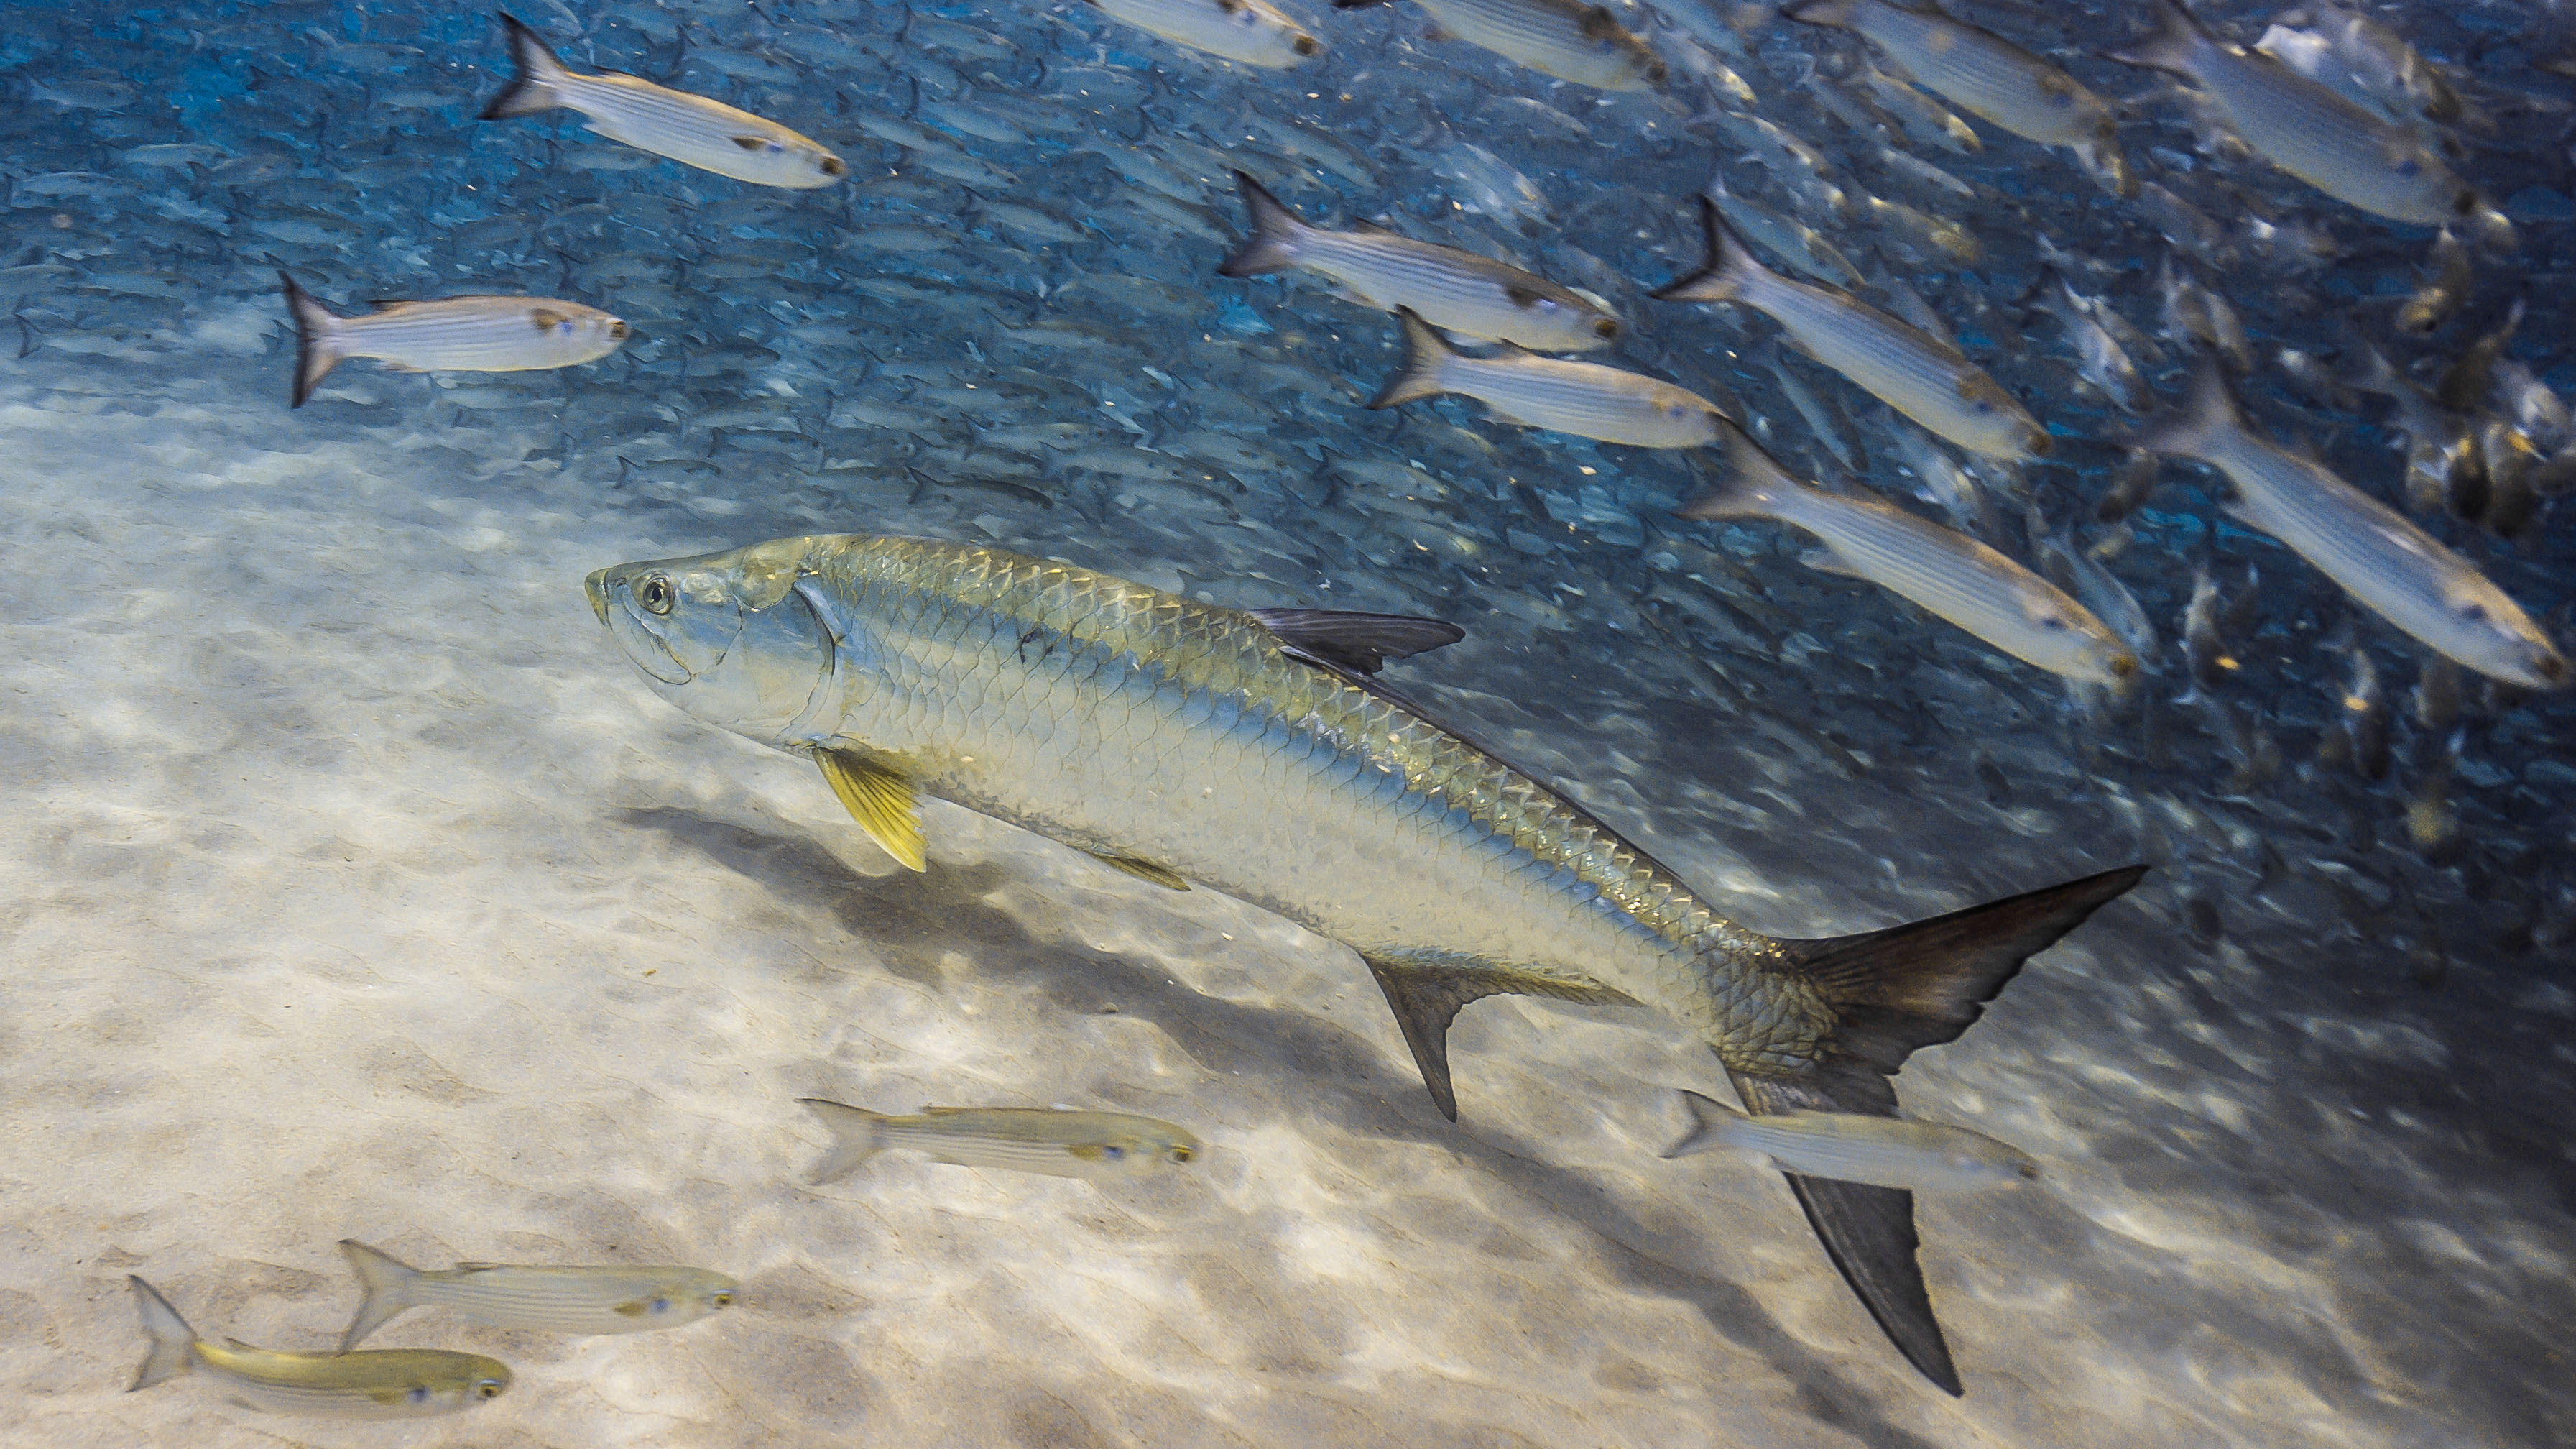 A tarpon swims by a school of mullet. Tarpon and other popular species like grouper and king mackerel depend on forage fish for food. That's why anglers and conservationists have come together to ask the Florida Fish and Wildlife Conservation Commission to protect a sufficient abundance and variety of forage species and account for the dietary needs of important popular recreational and commercial fish species when setting fishing rules.